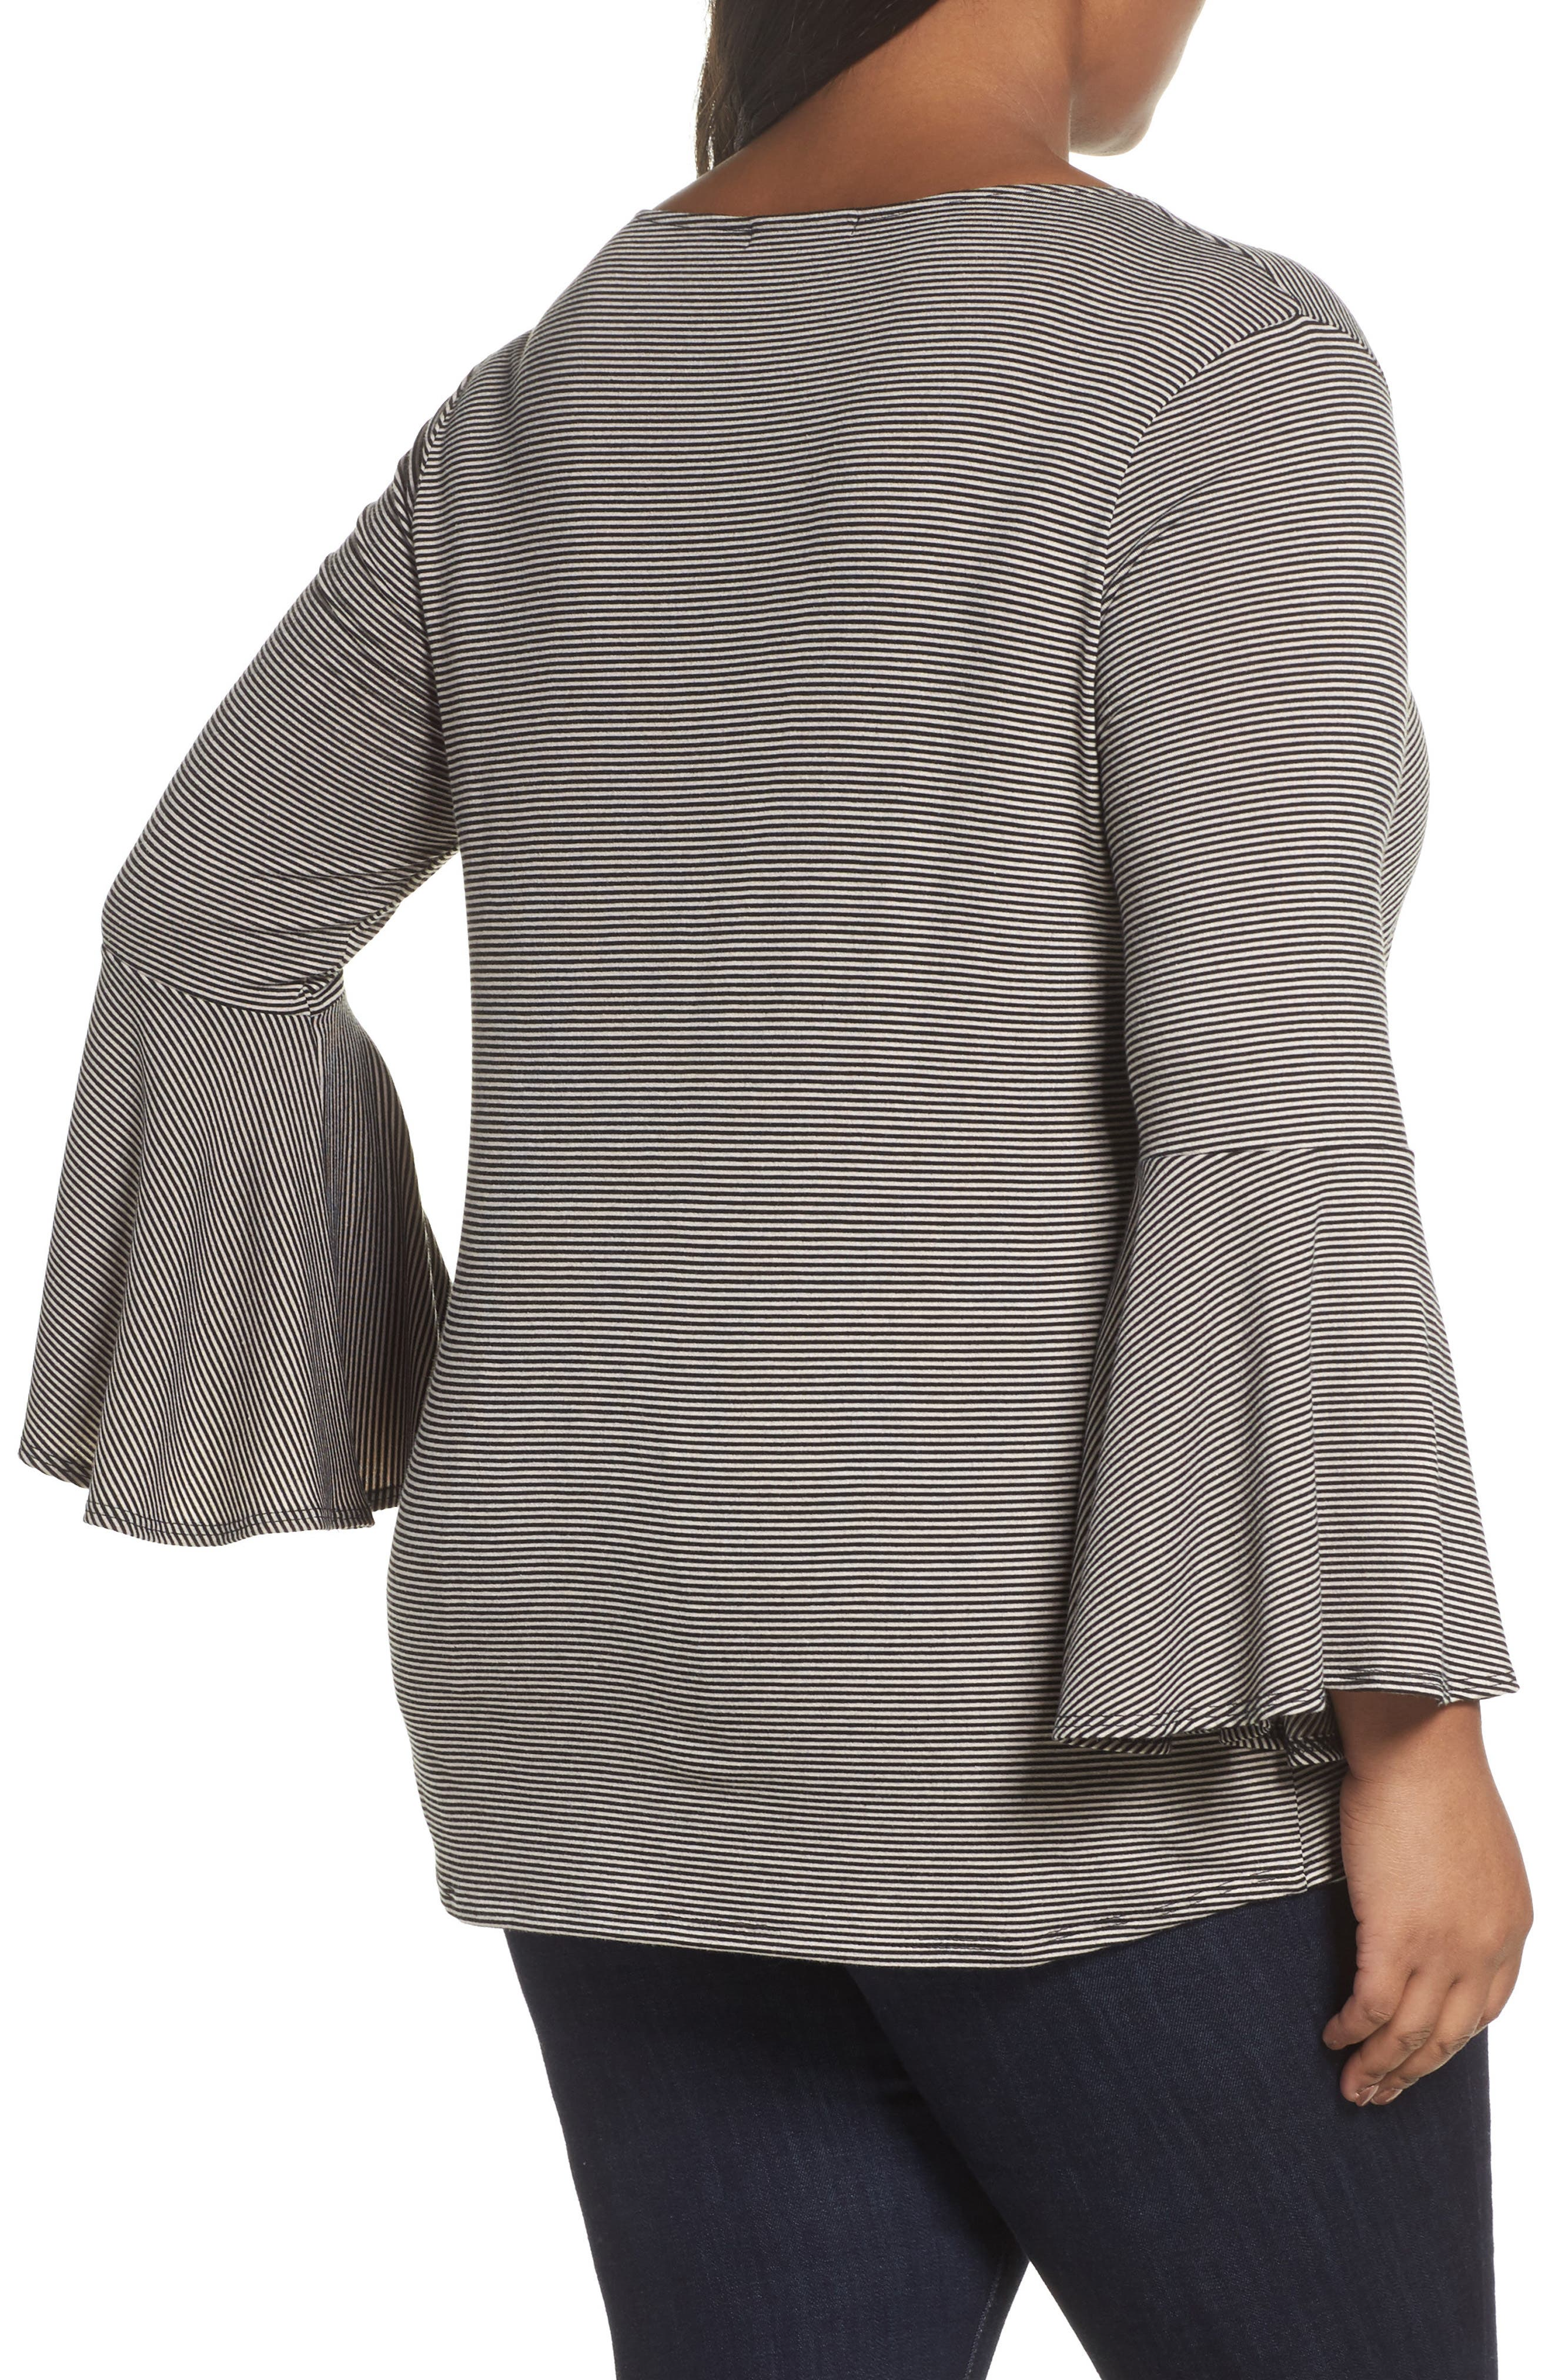 Bell Sleeve Top,                             Alternate thumbnail 5, color,